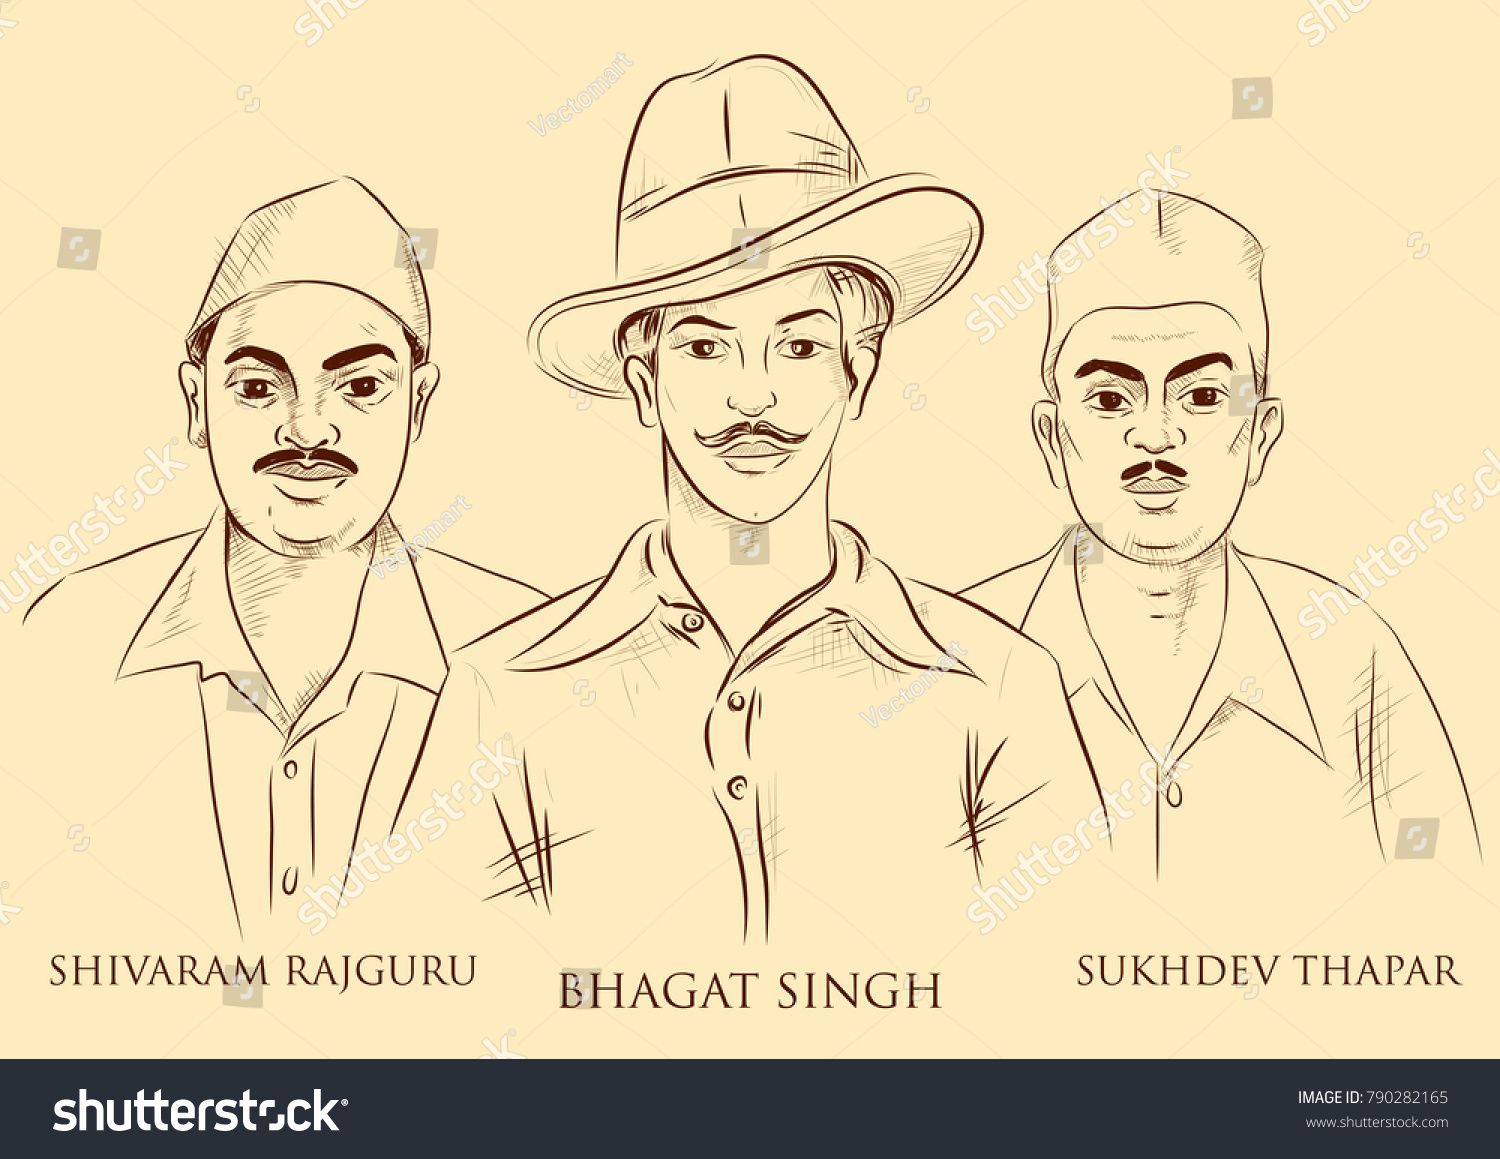 Pin by Jasveer Singh on Martyrs Freedom fighters